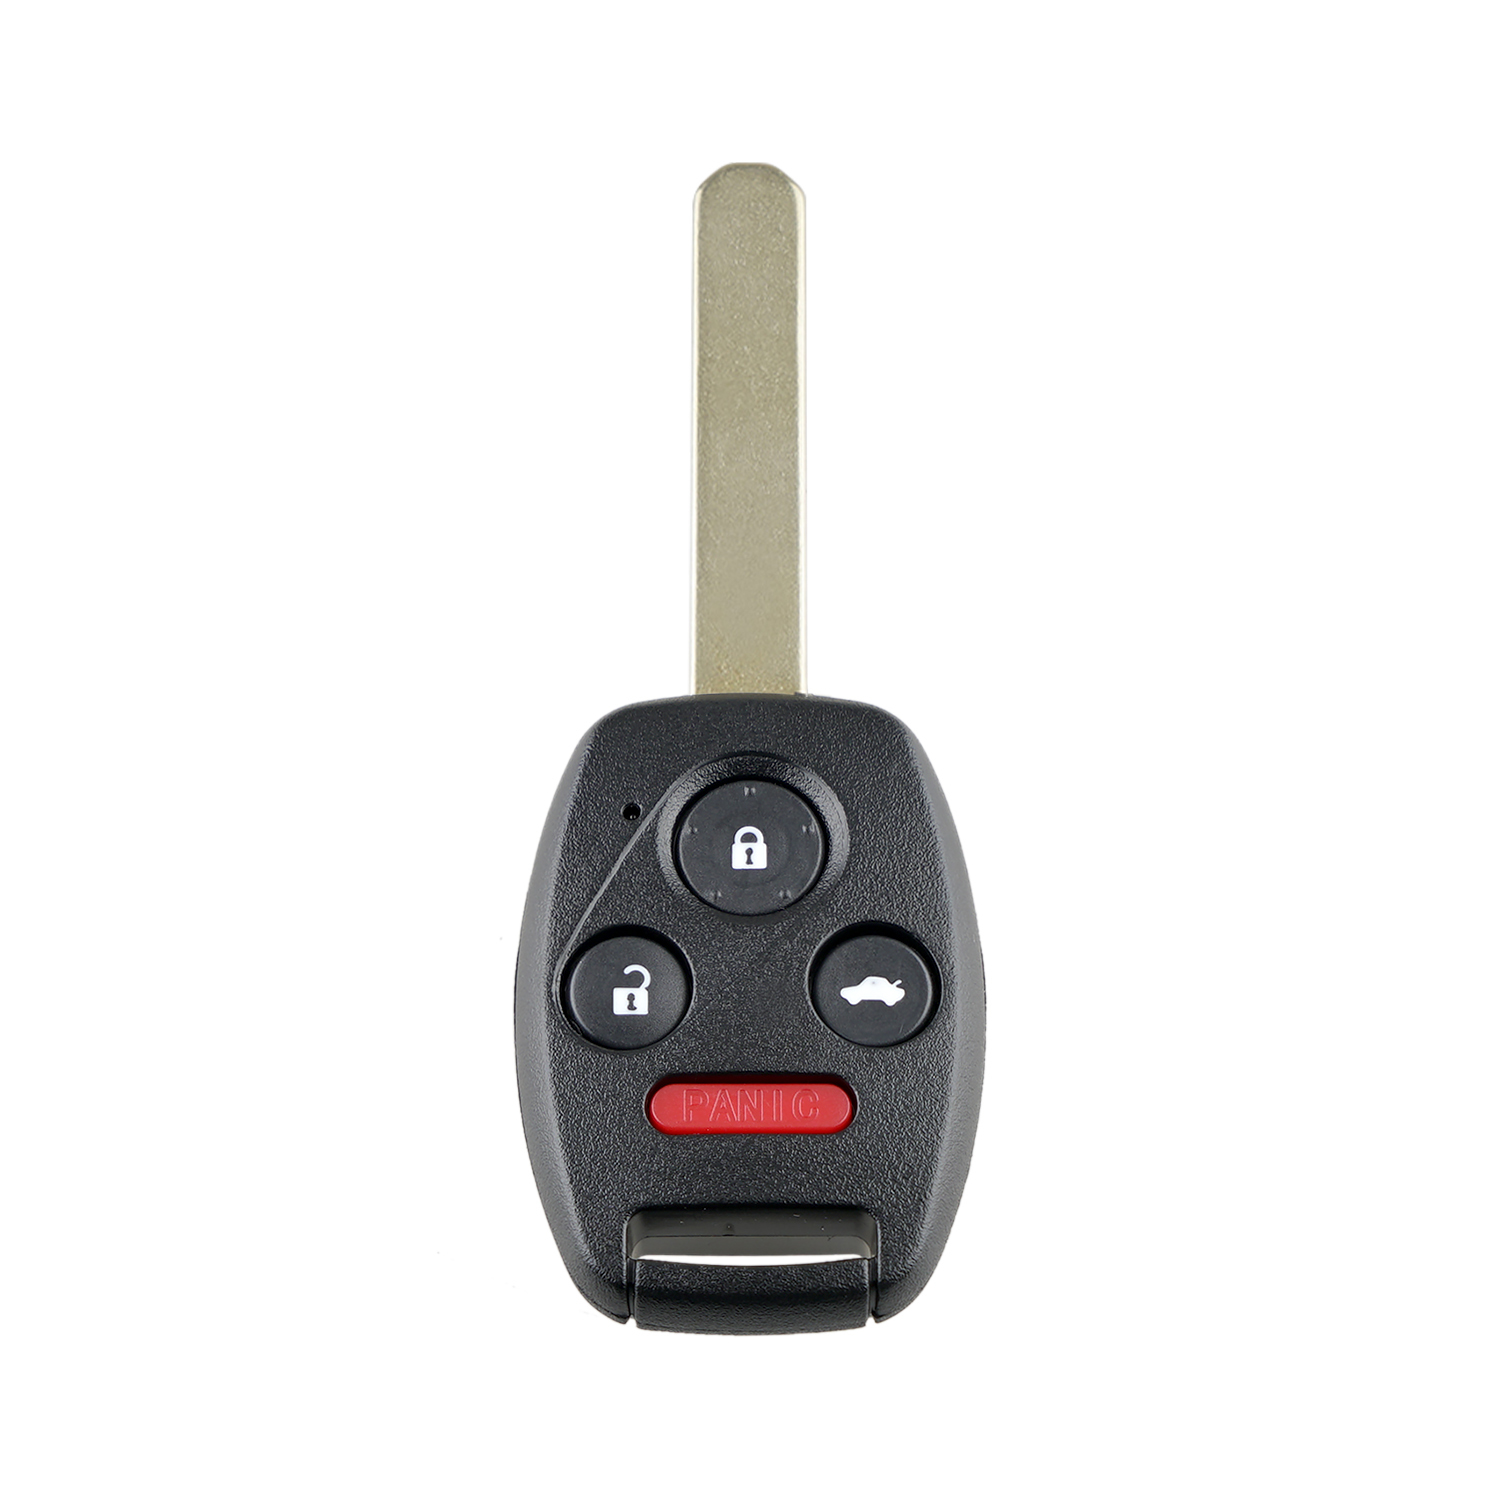 J54 Car Key 4 Key + ID46 Chip 313.8 Frequency Remote Entry Key Fob For 2003 2004 2005 2006 2007 Honda Accord Oucg8d-380h-a